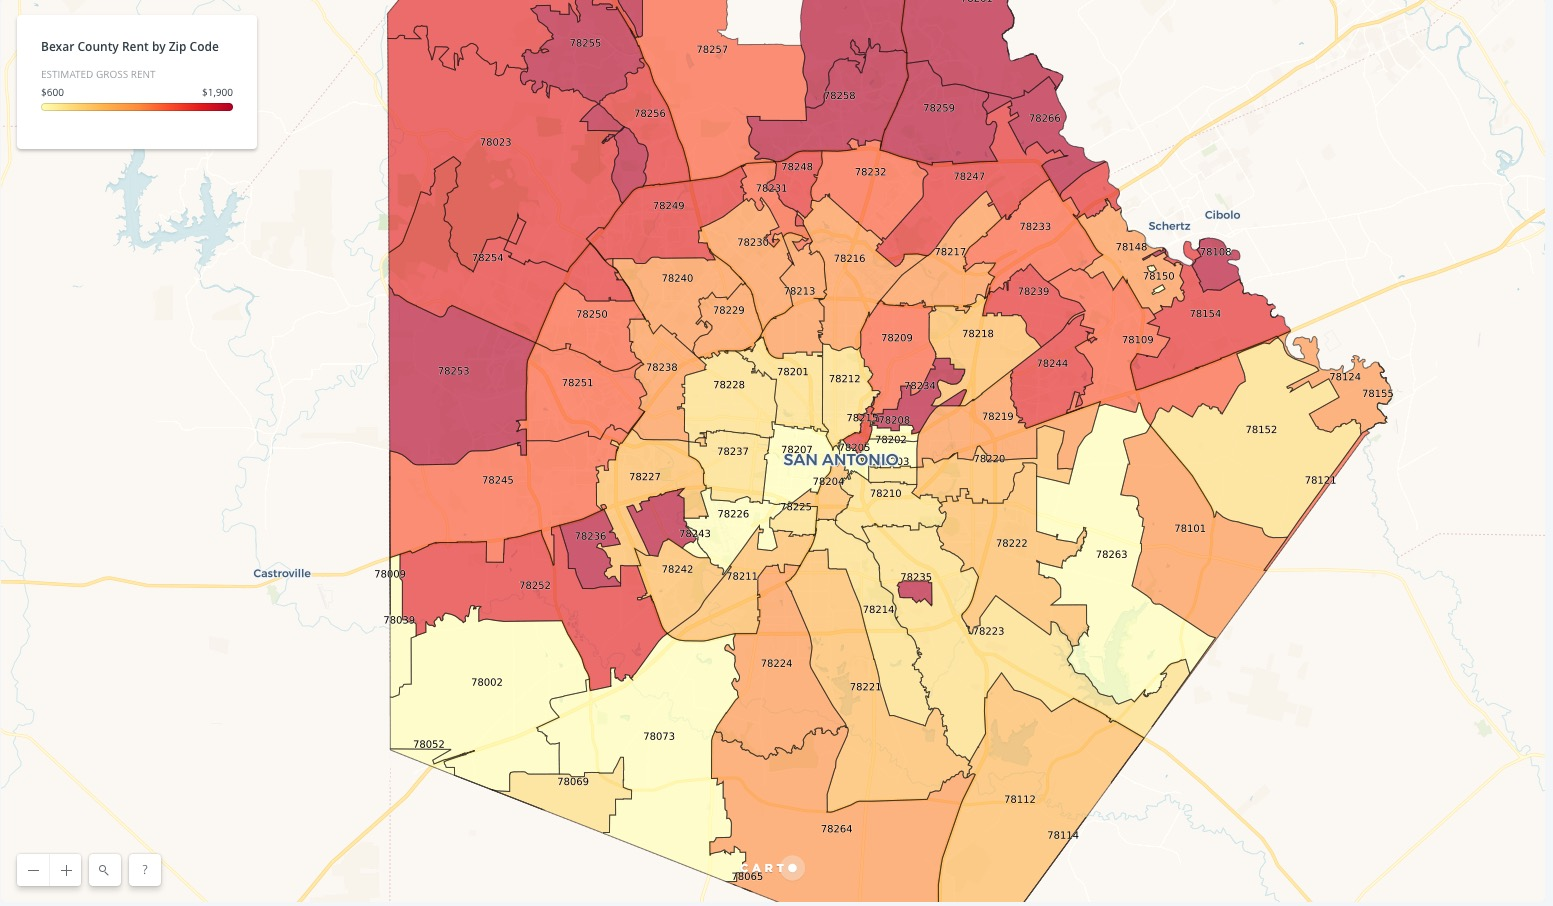 san antonio zip codes on map Map Which San Antonio Zip Codes Are Paying The Most Rent san antonio zip codes on map